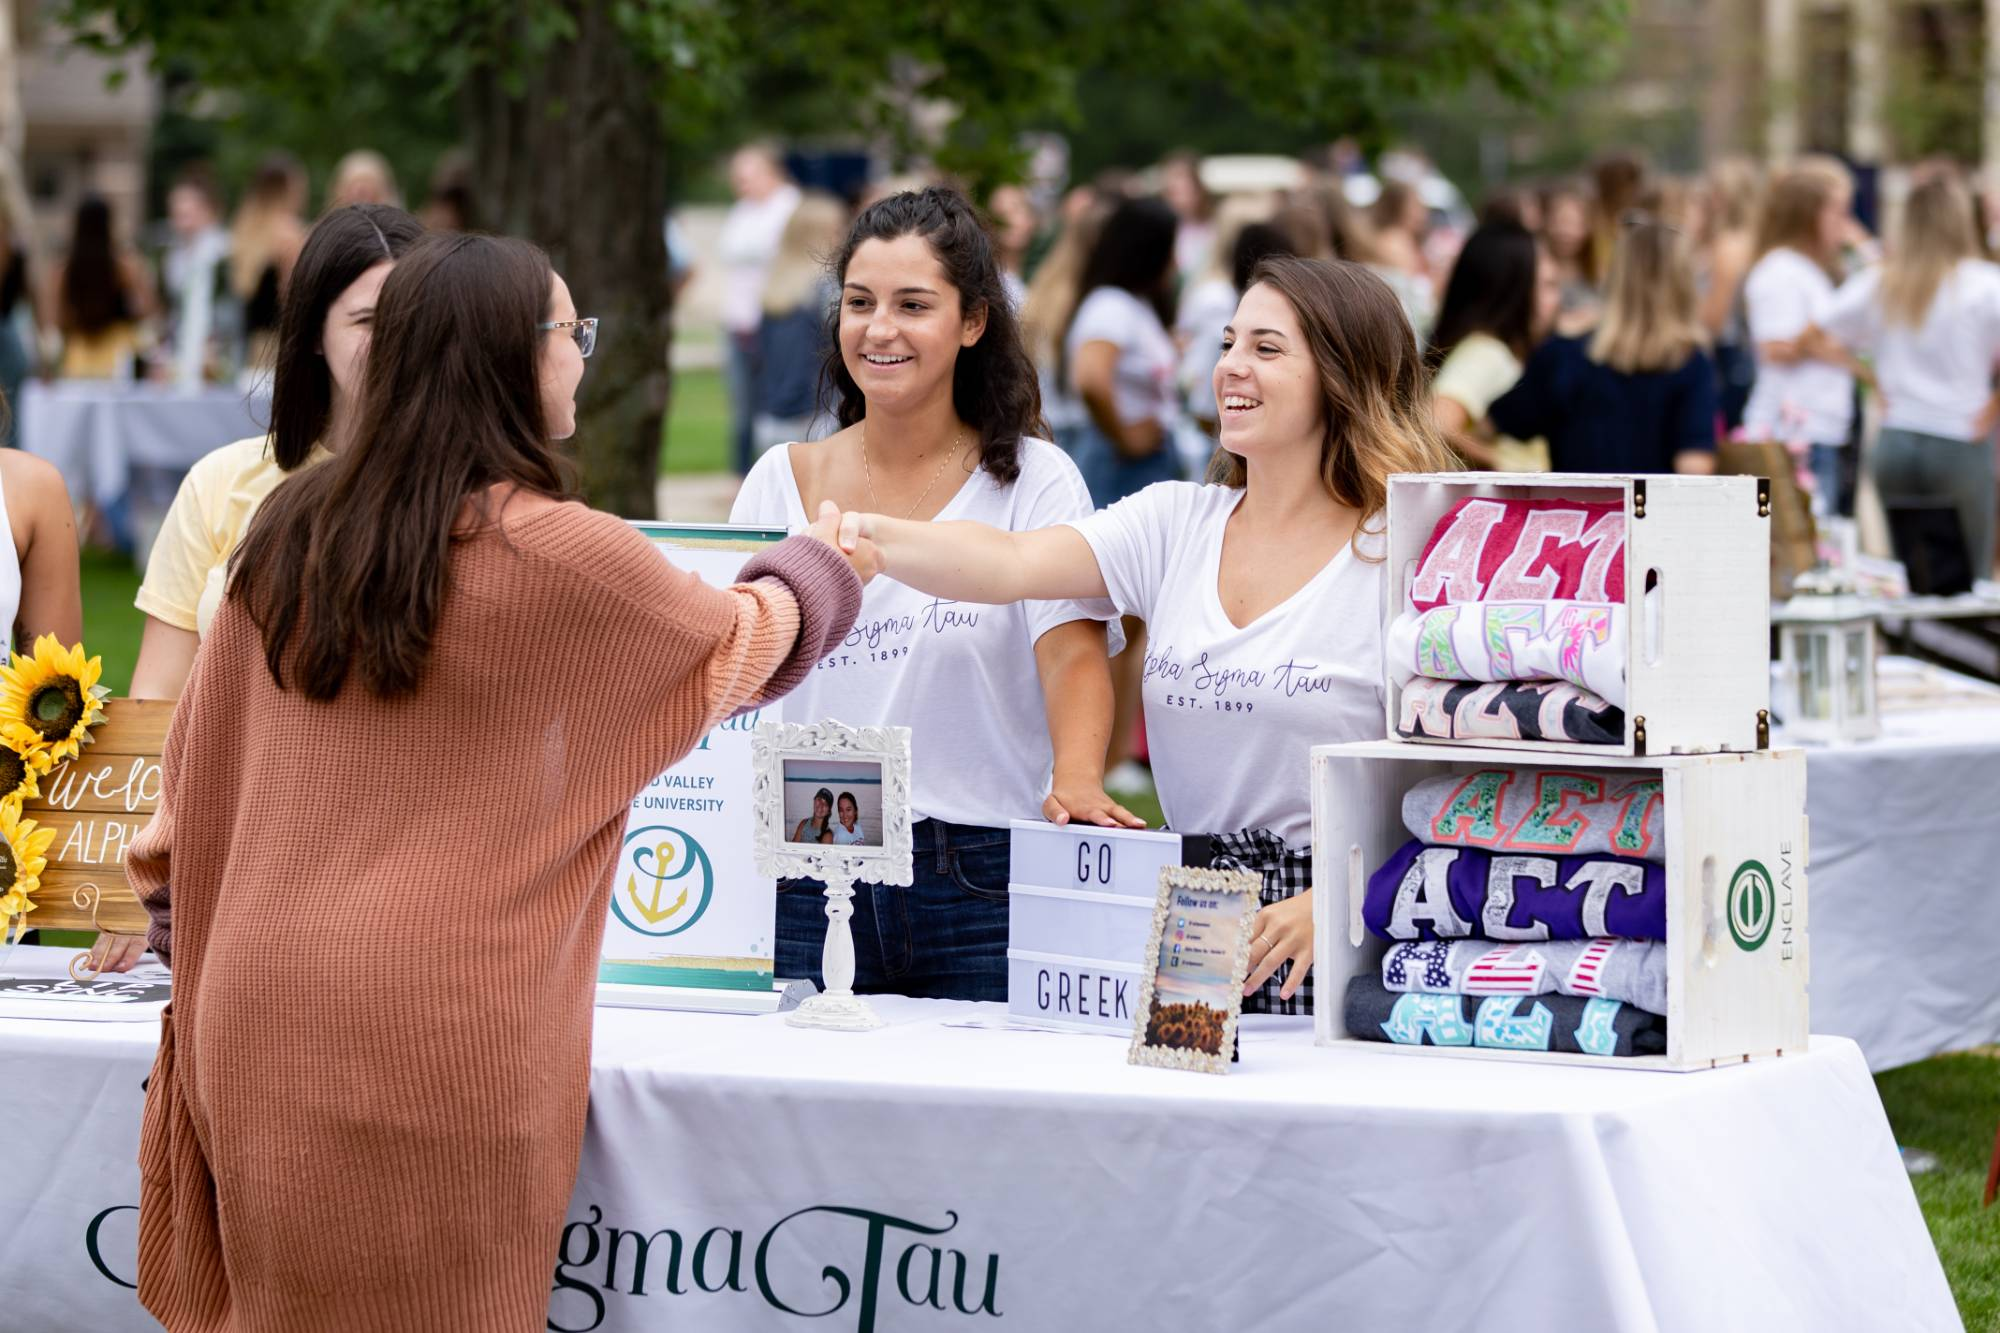 Members of Alpha Sigma Tau meeting a student.